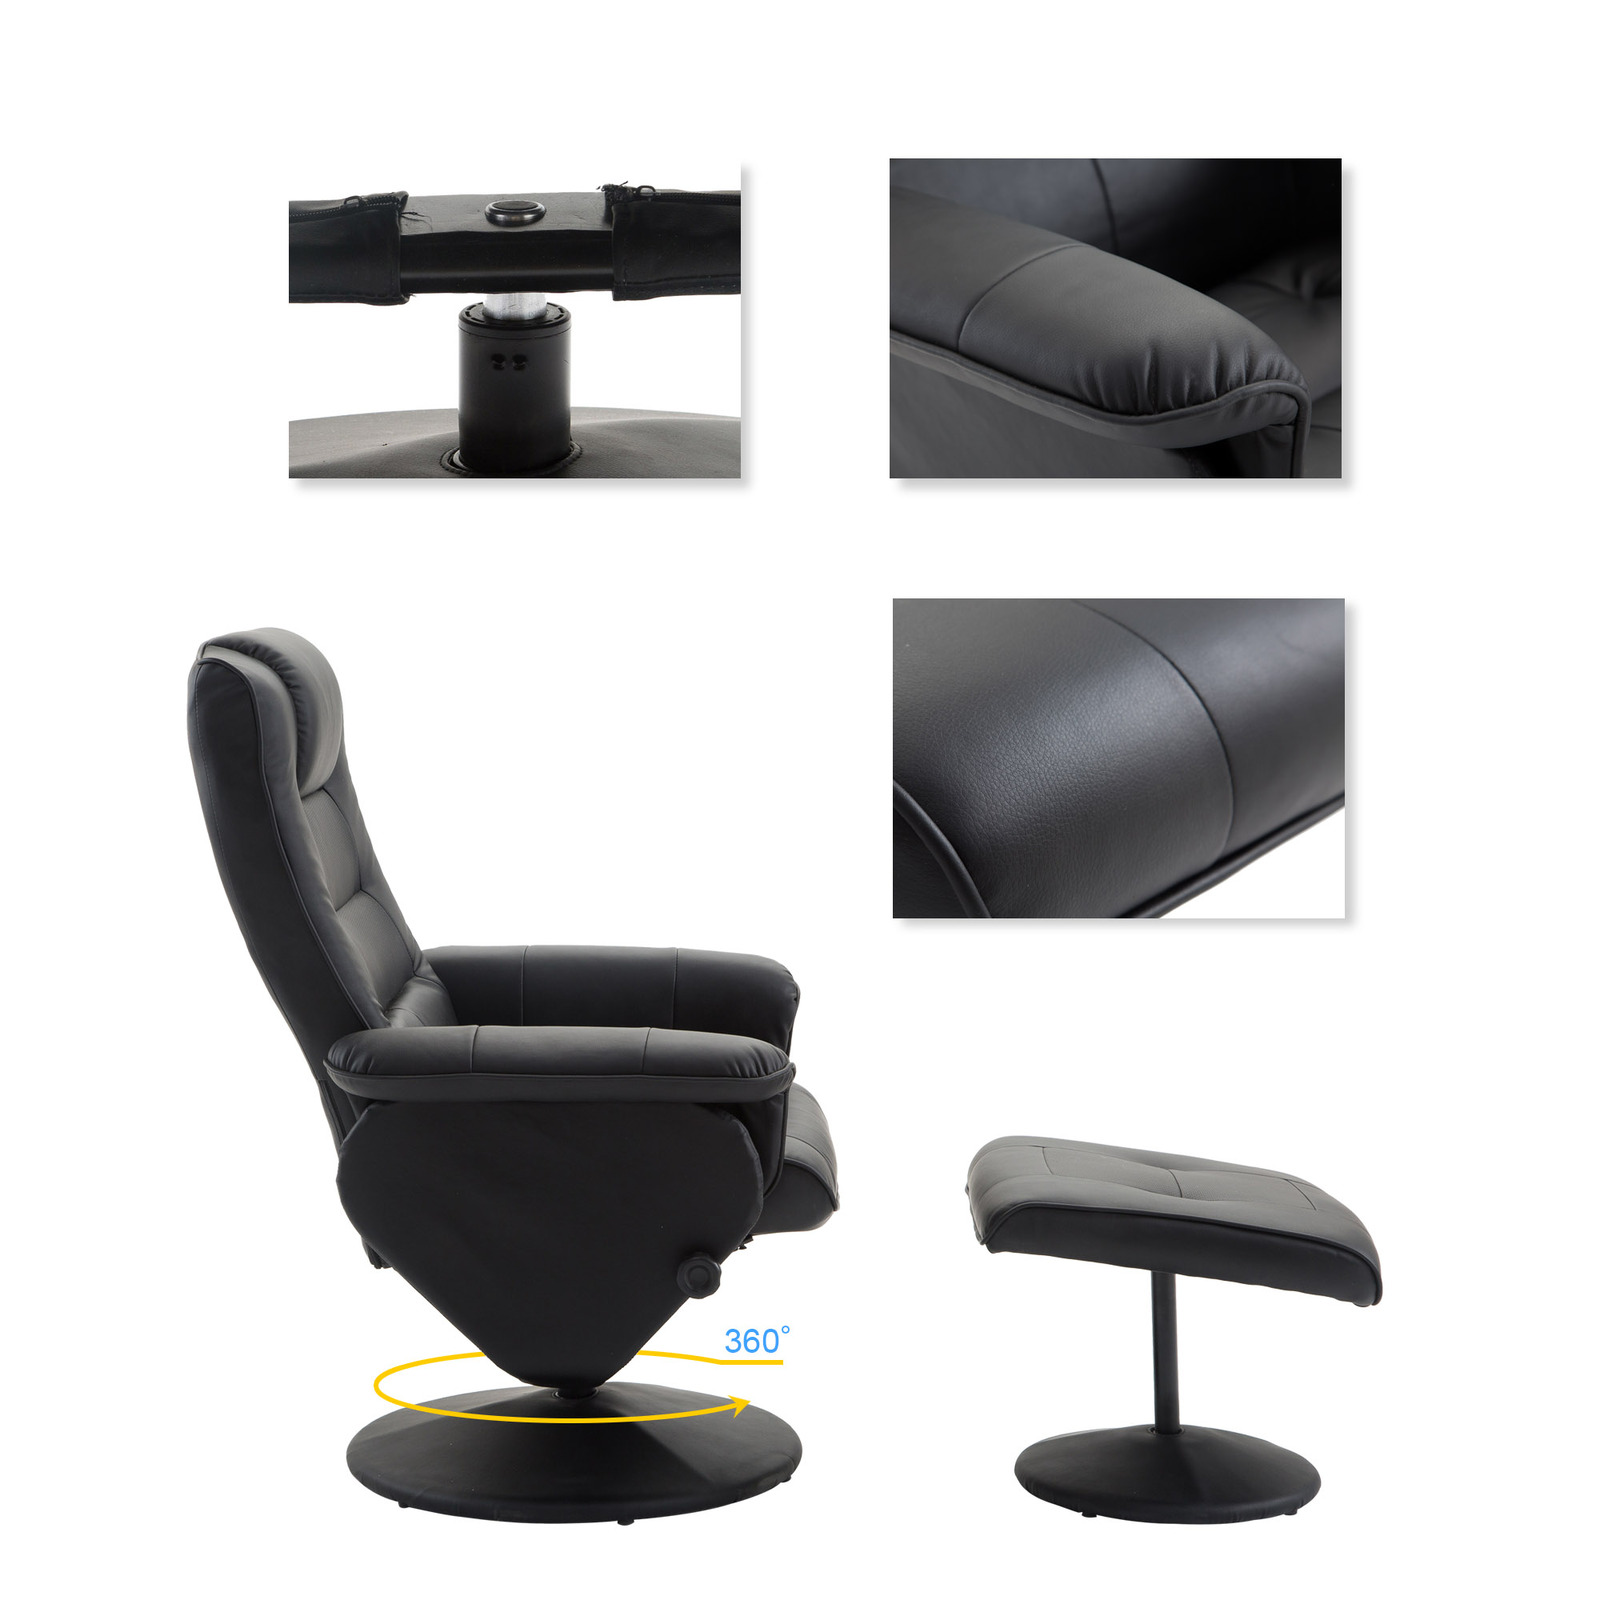 PU Leather Recliner Chair w/Ottoman Leisure Swivel Sofa Executive Furniture Set